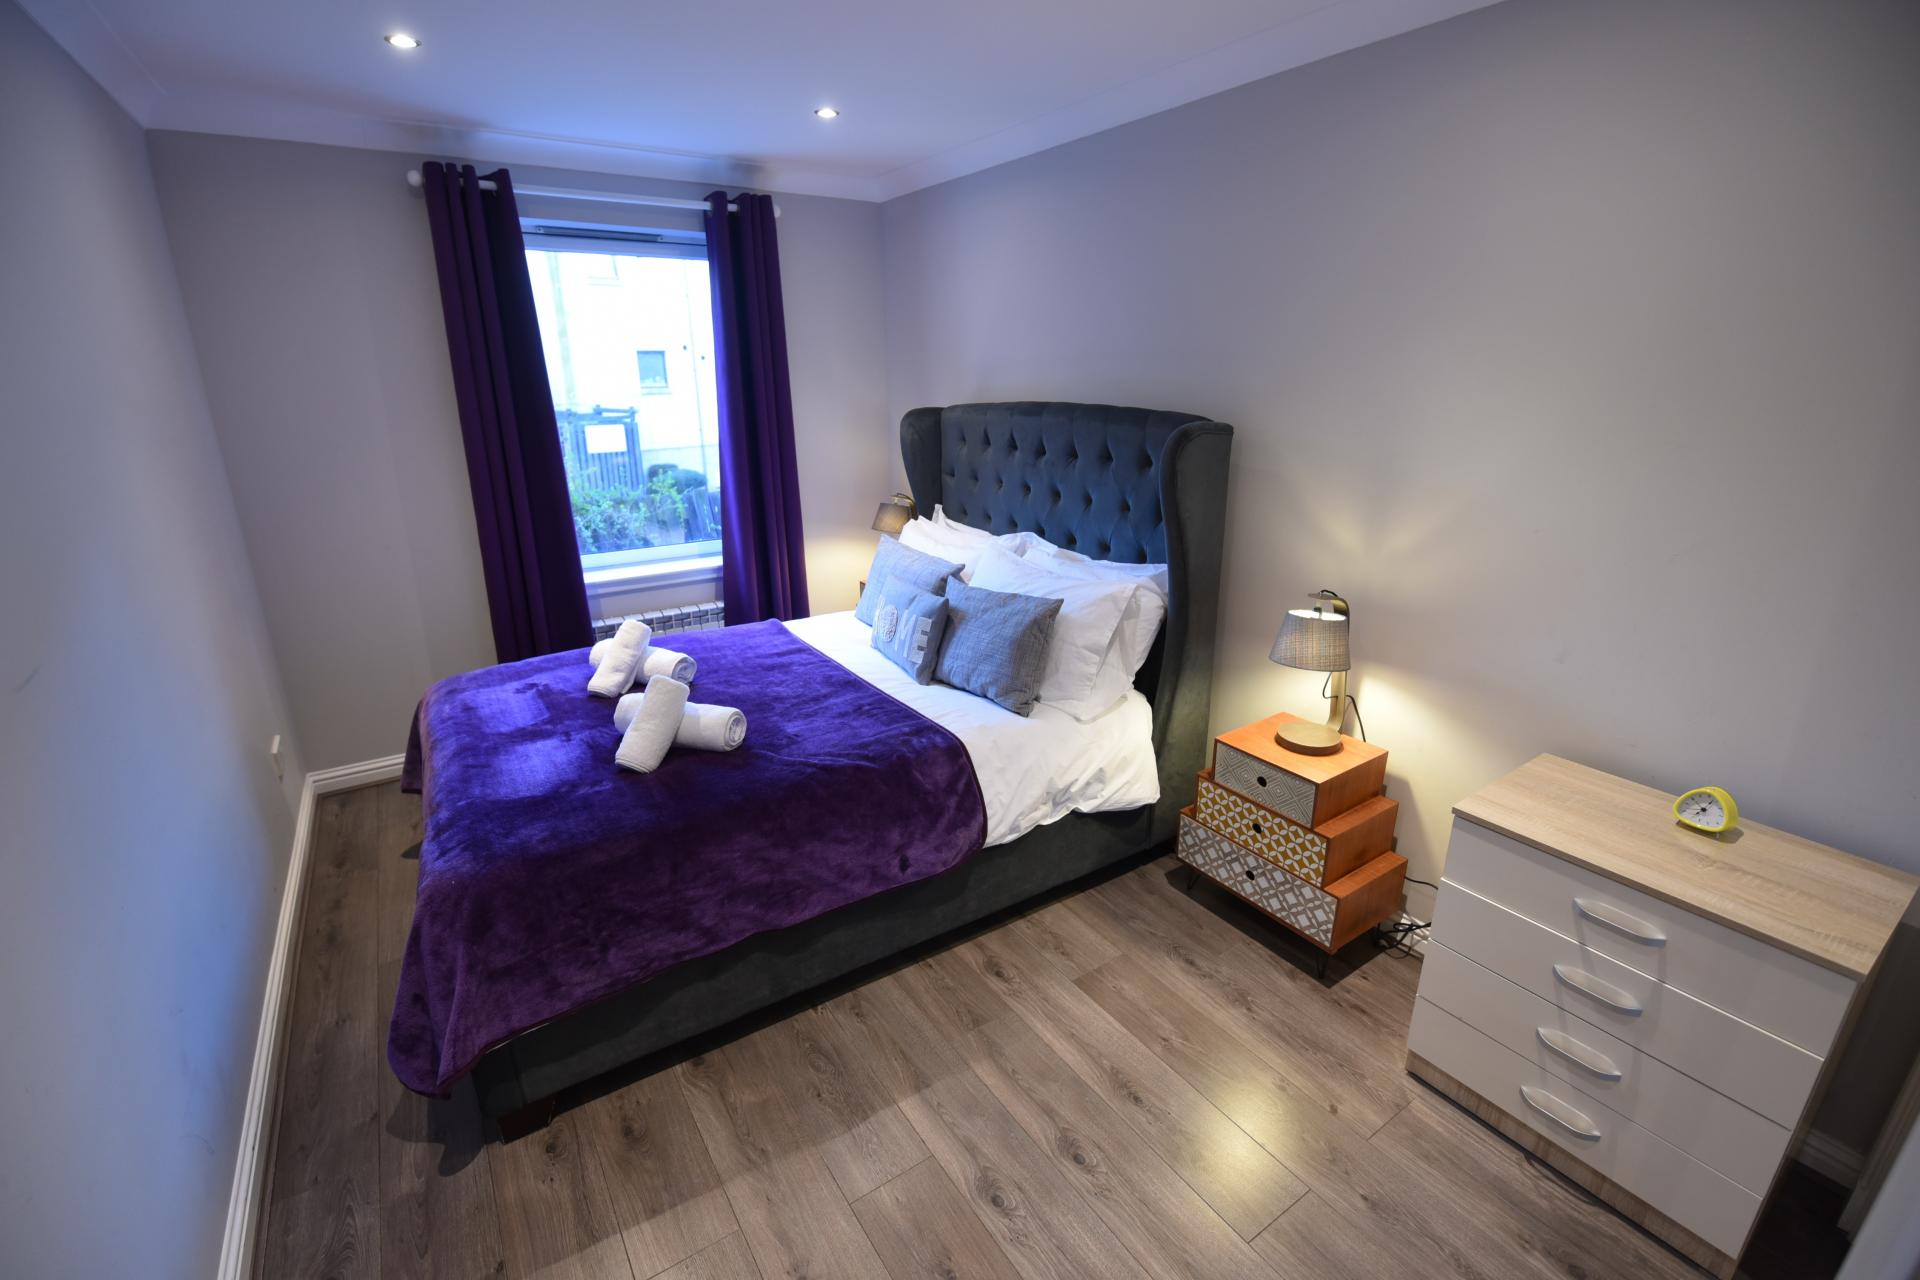 Bedroom at St Johns Hill Apartment, Old Town, Edinburgh - Citybase Apartments